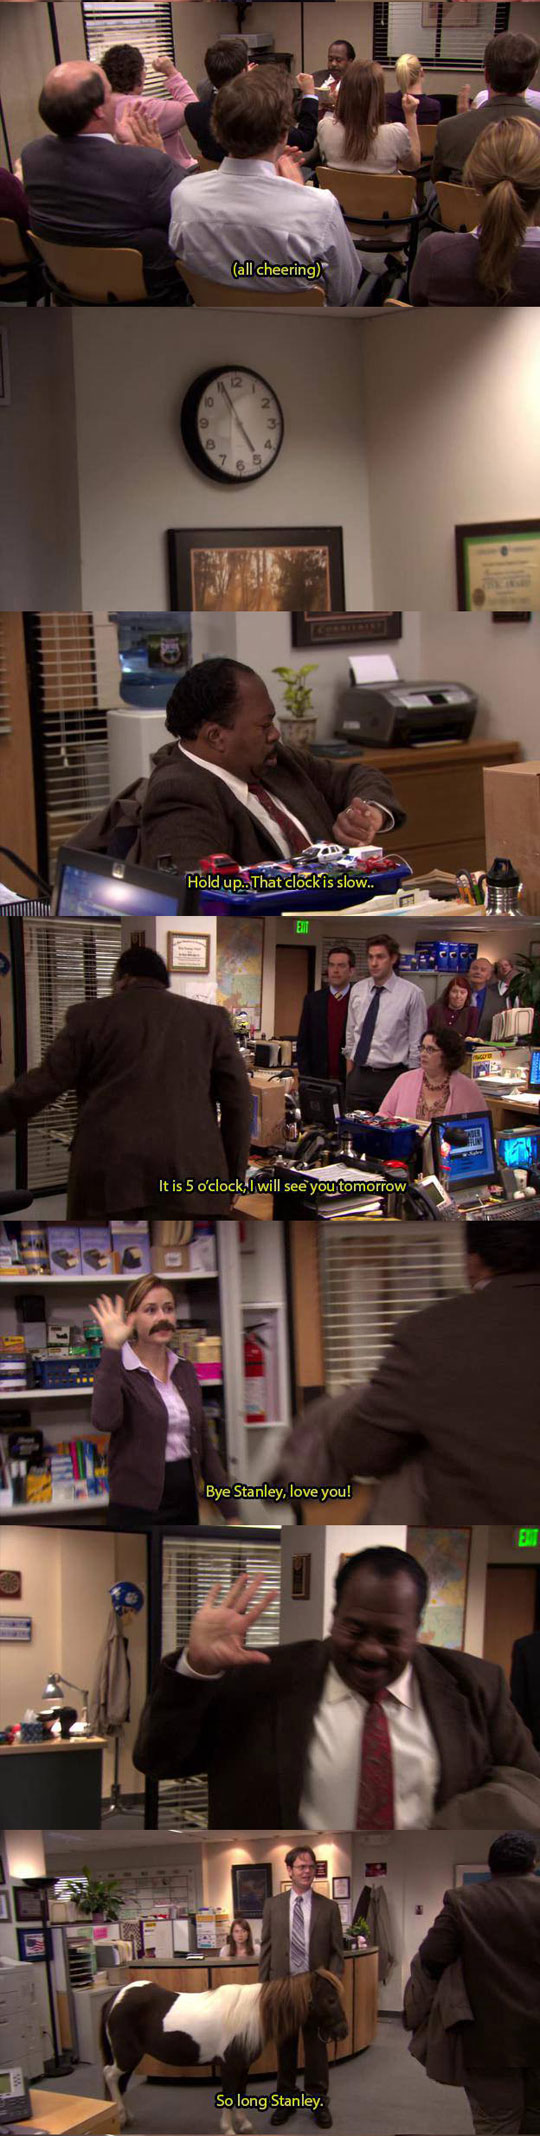 funny-The-Office-Stanley-distracted-job